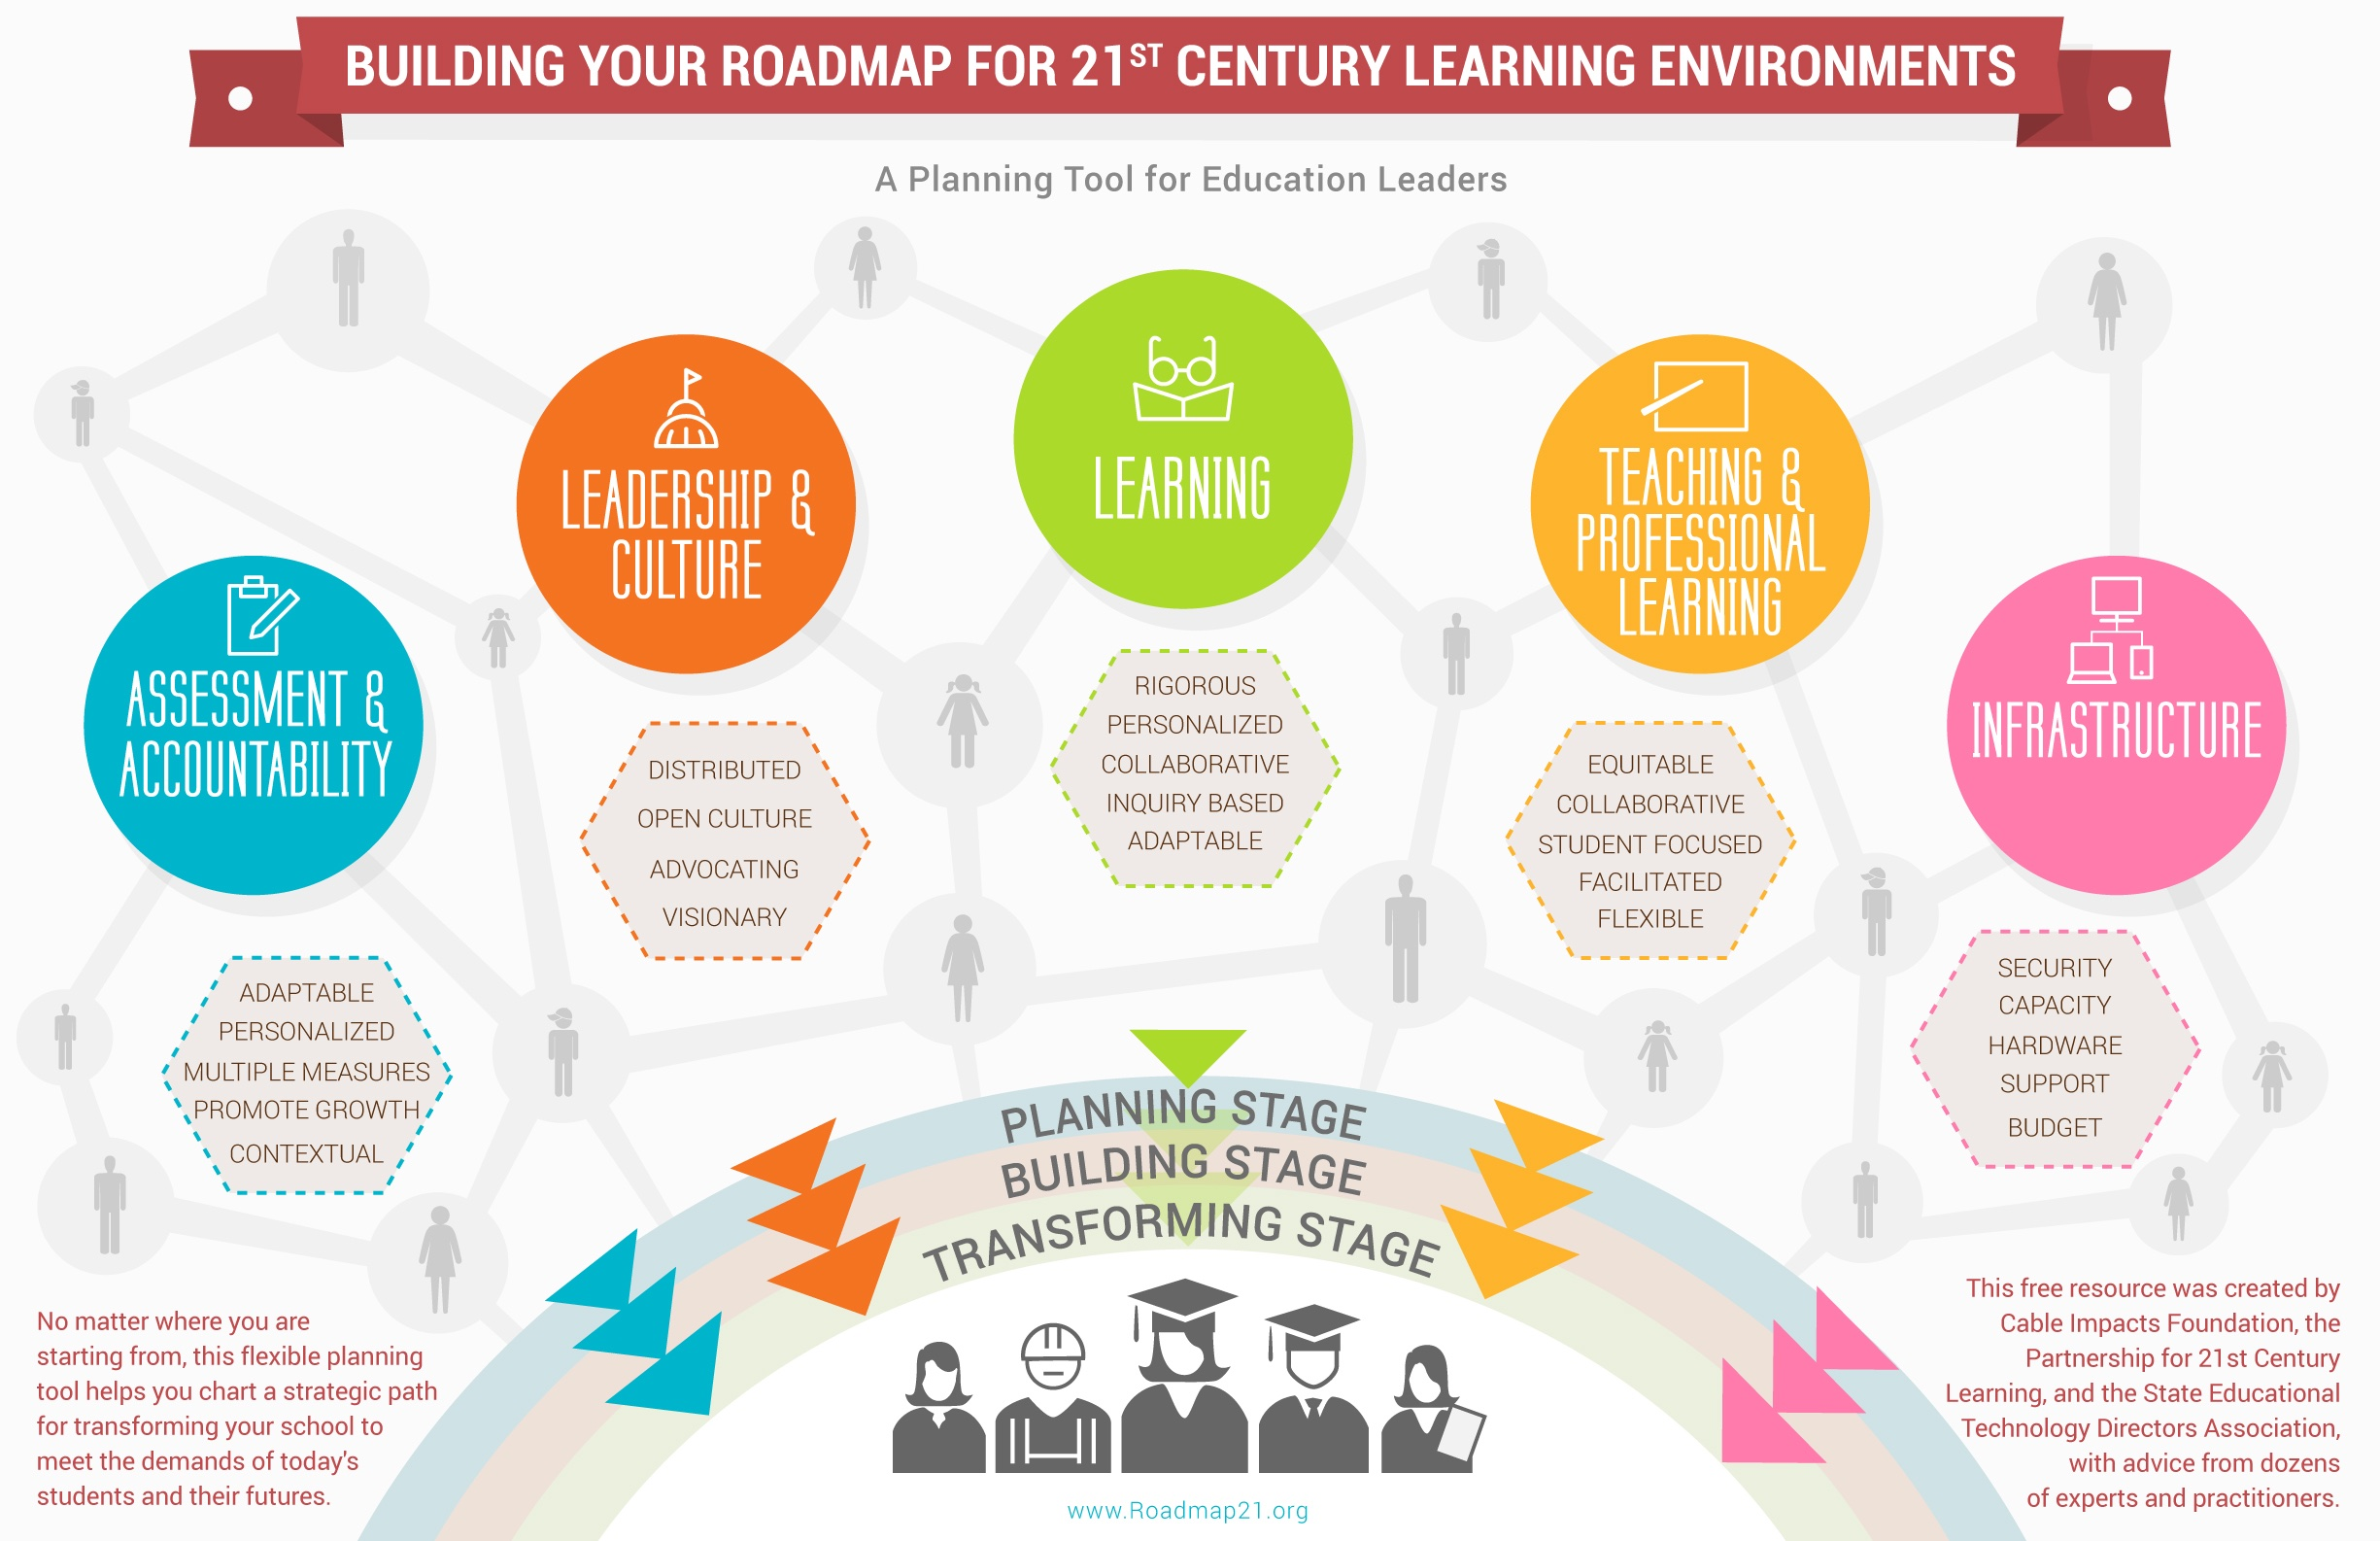 Broadband In Education A Roadmap To 21st Century Learning